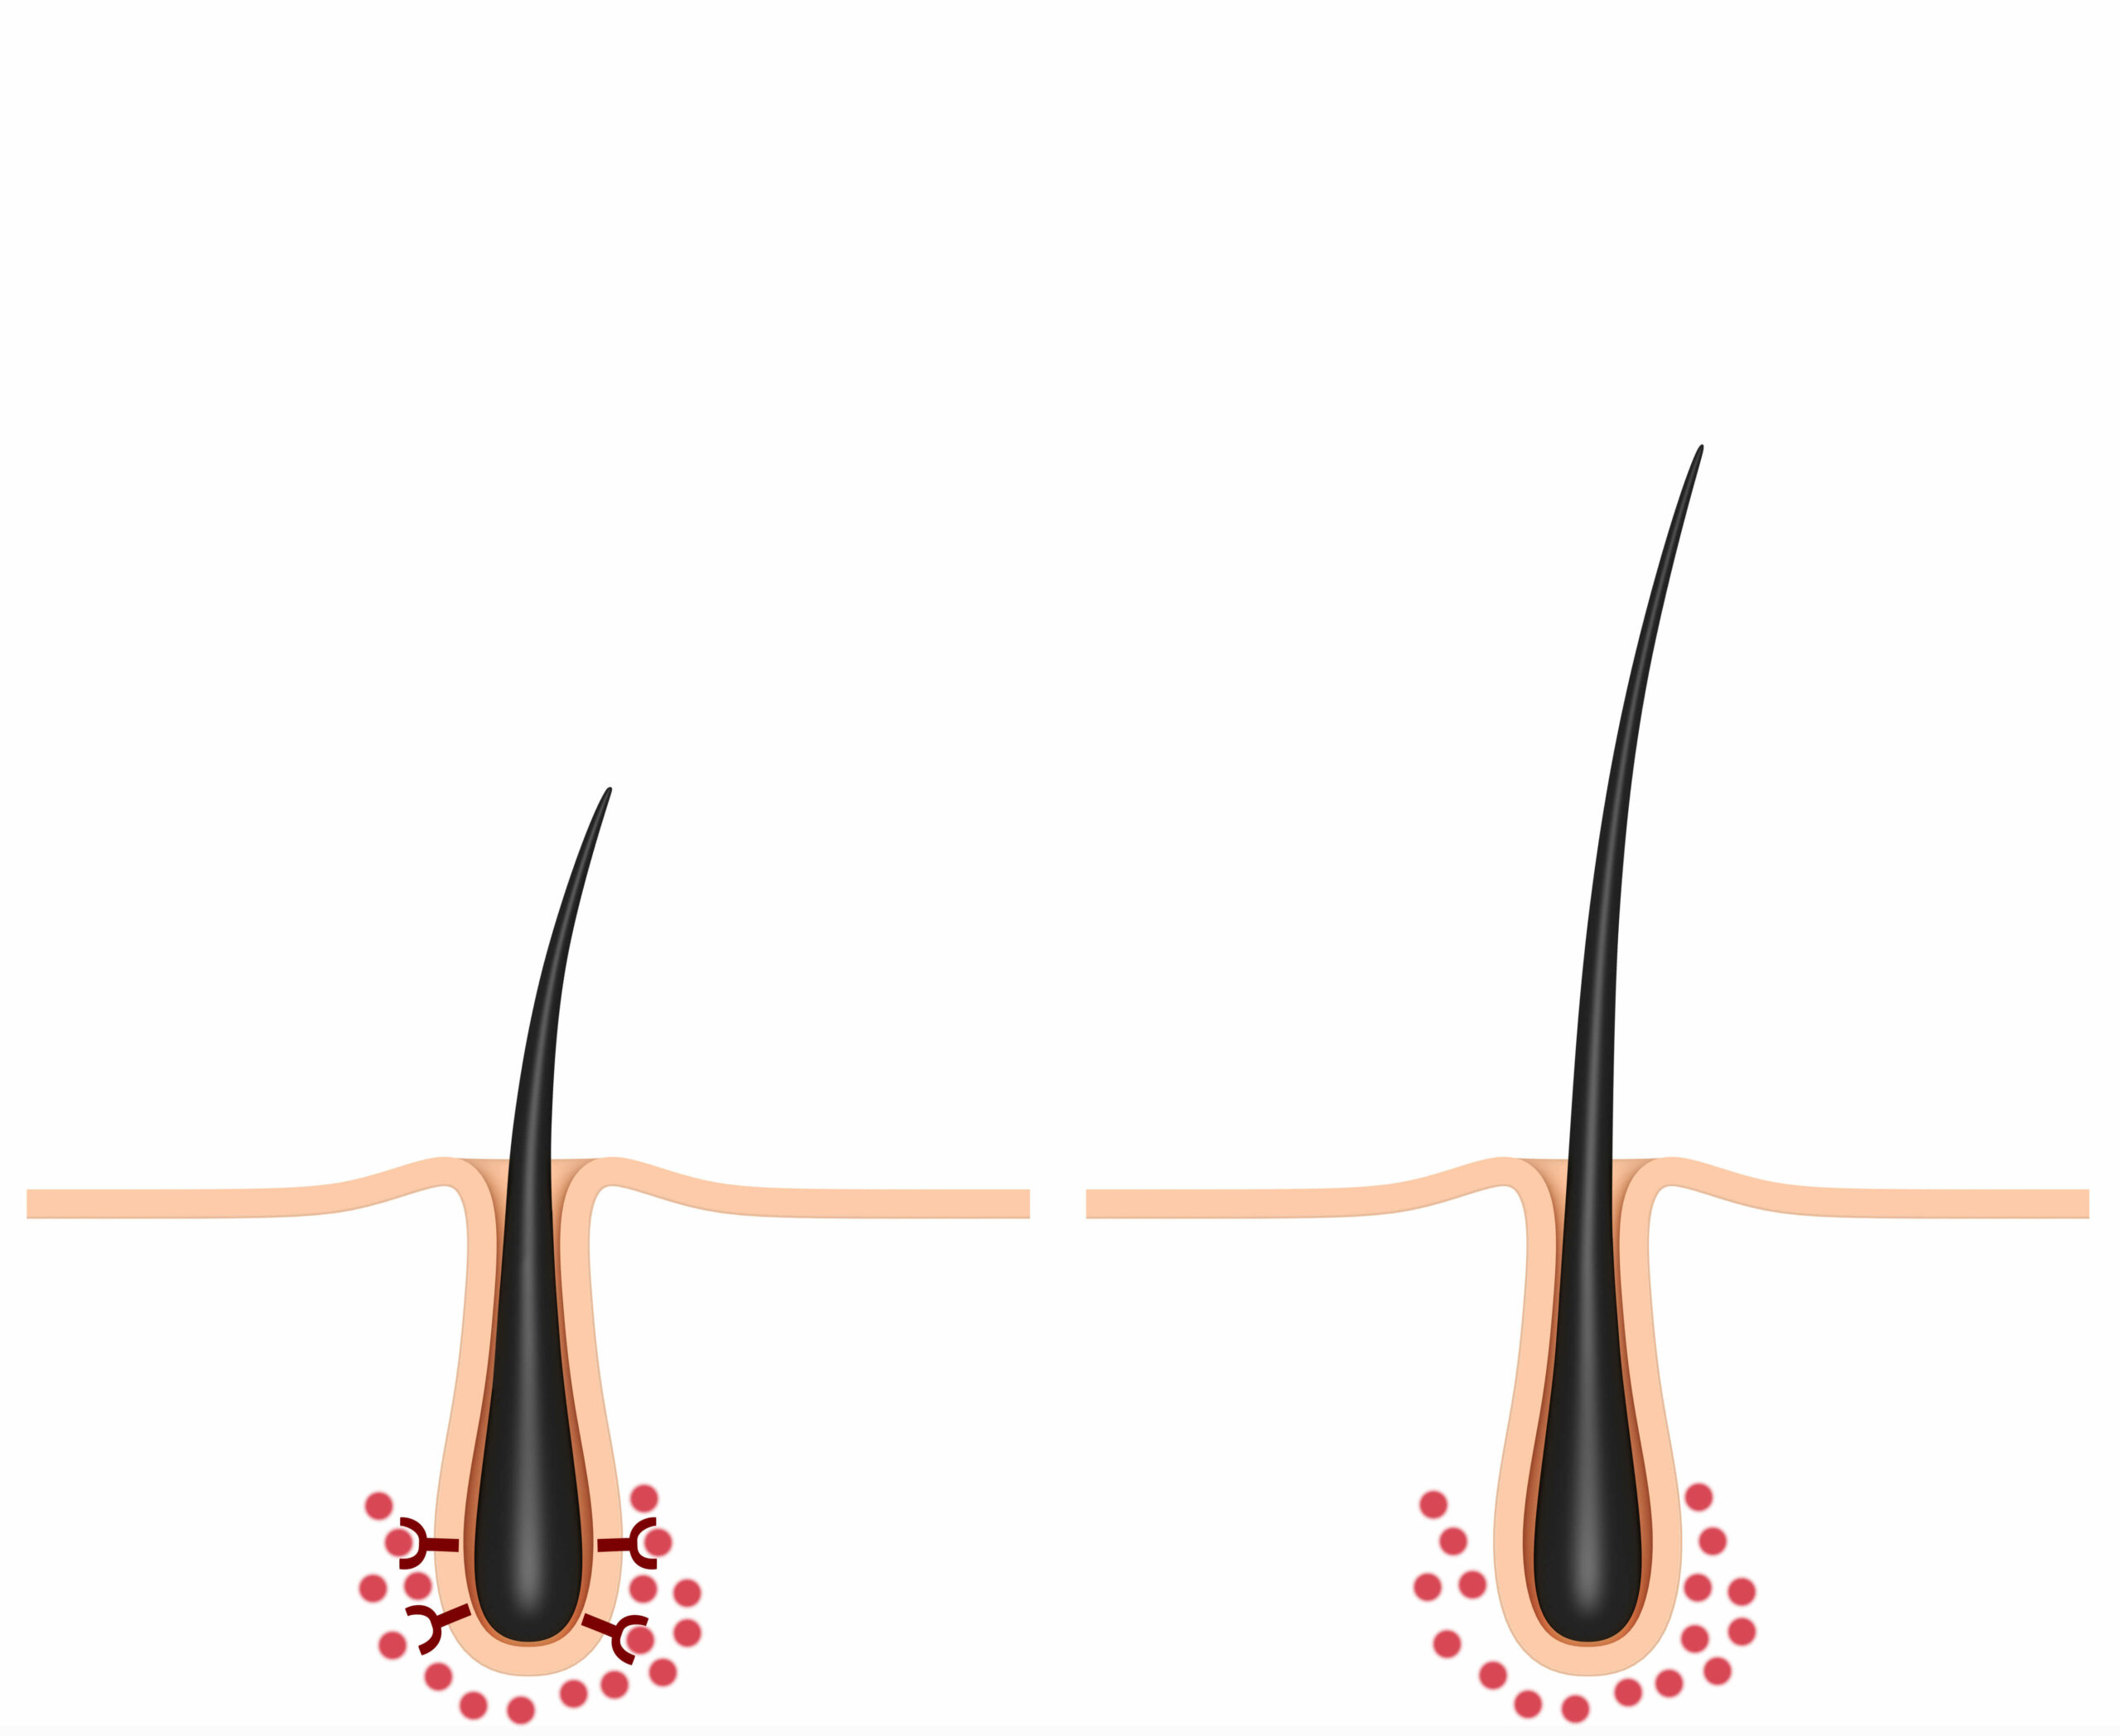 Two hair follicles, one which is smaller and affected by DHT binding to its receptors